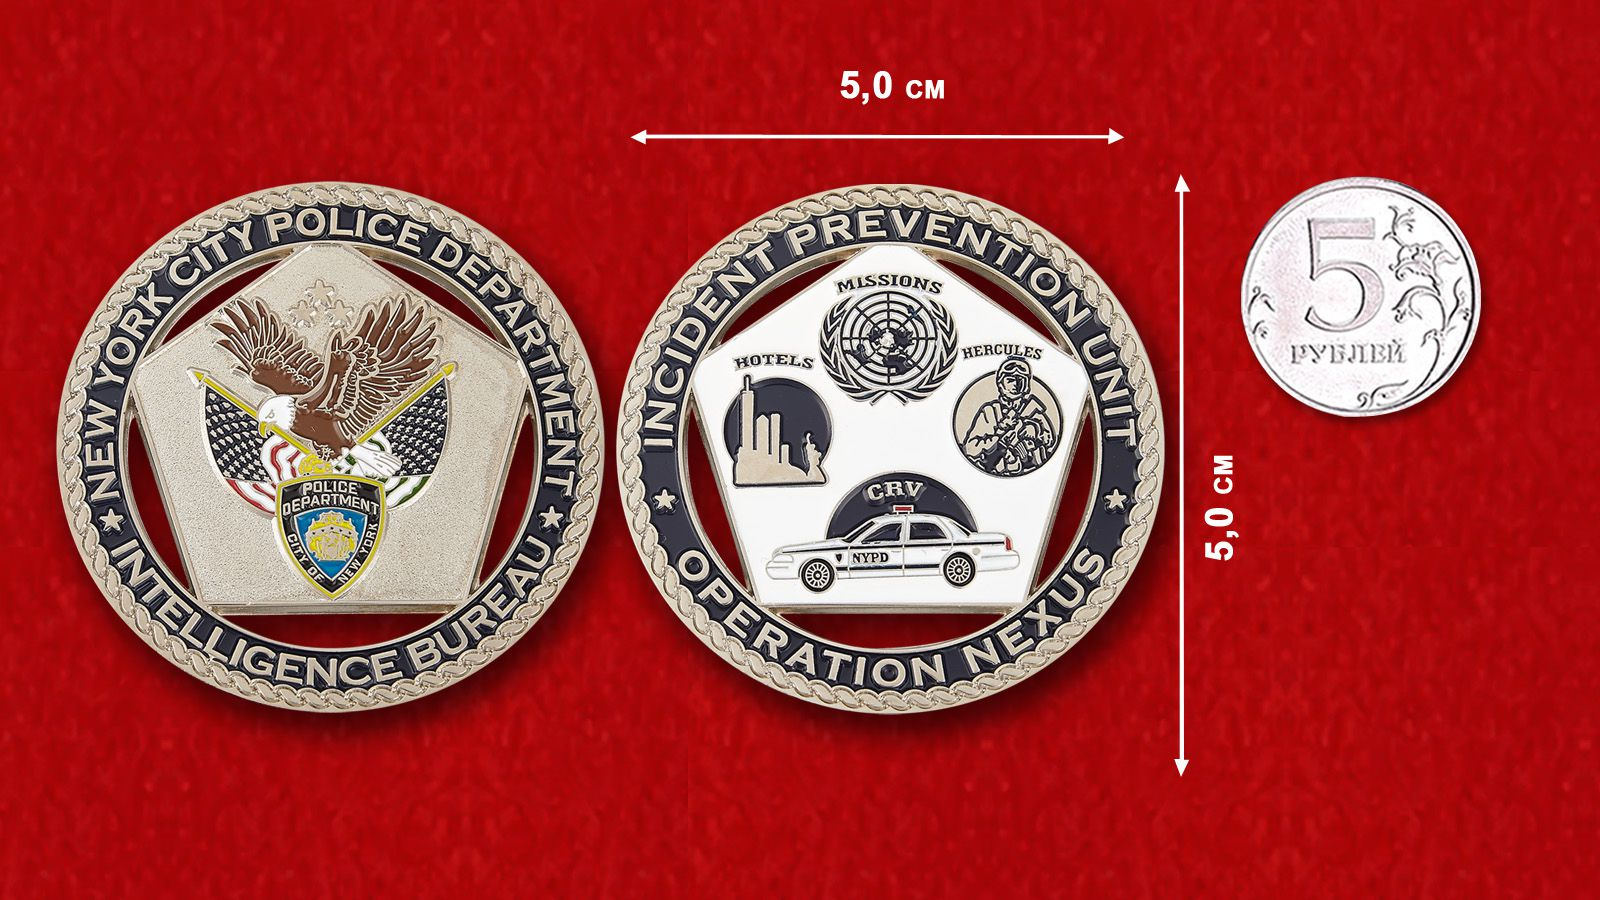 Challenge coin Intelligence Bureau police in New York City - comparative size